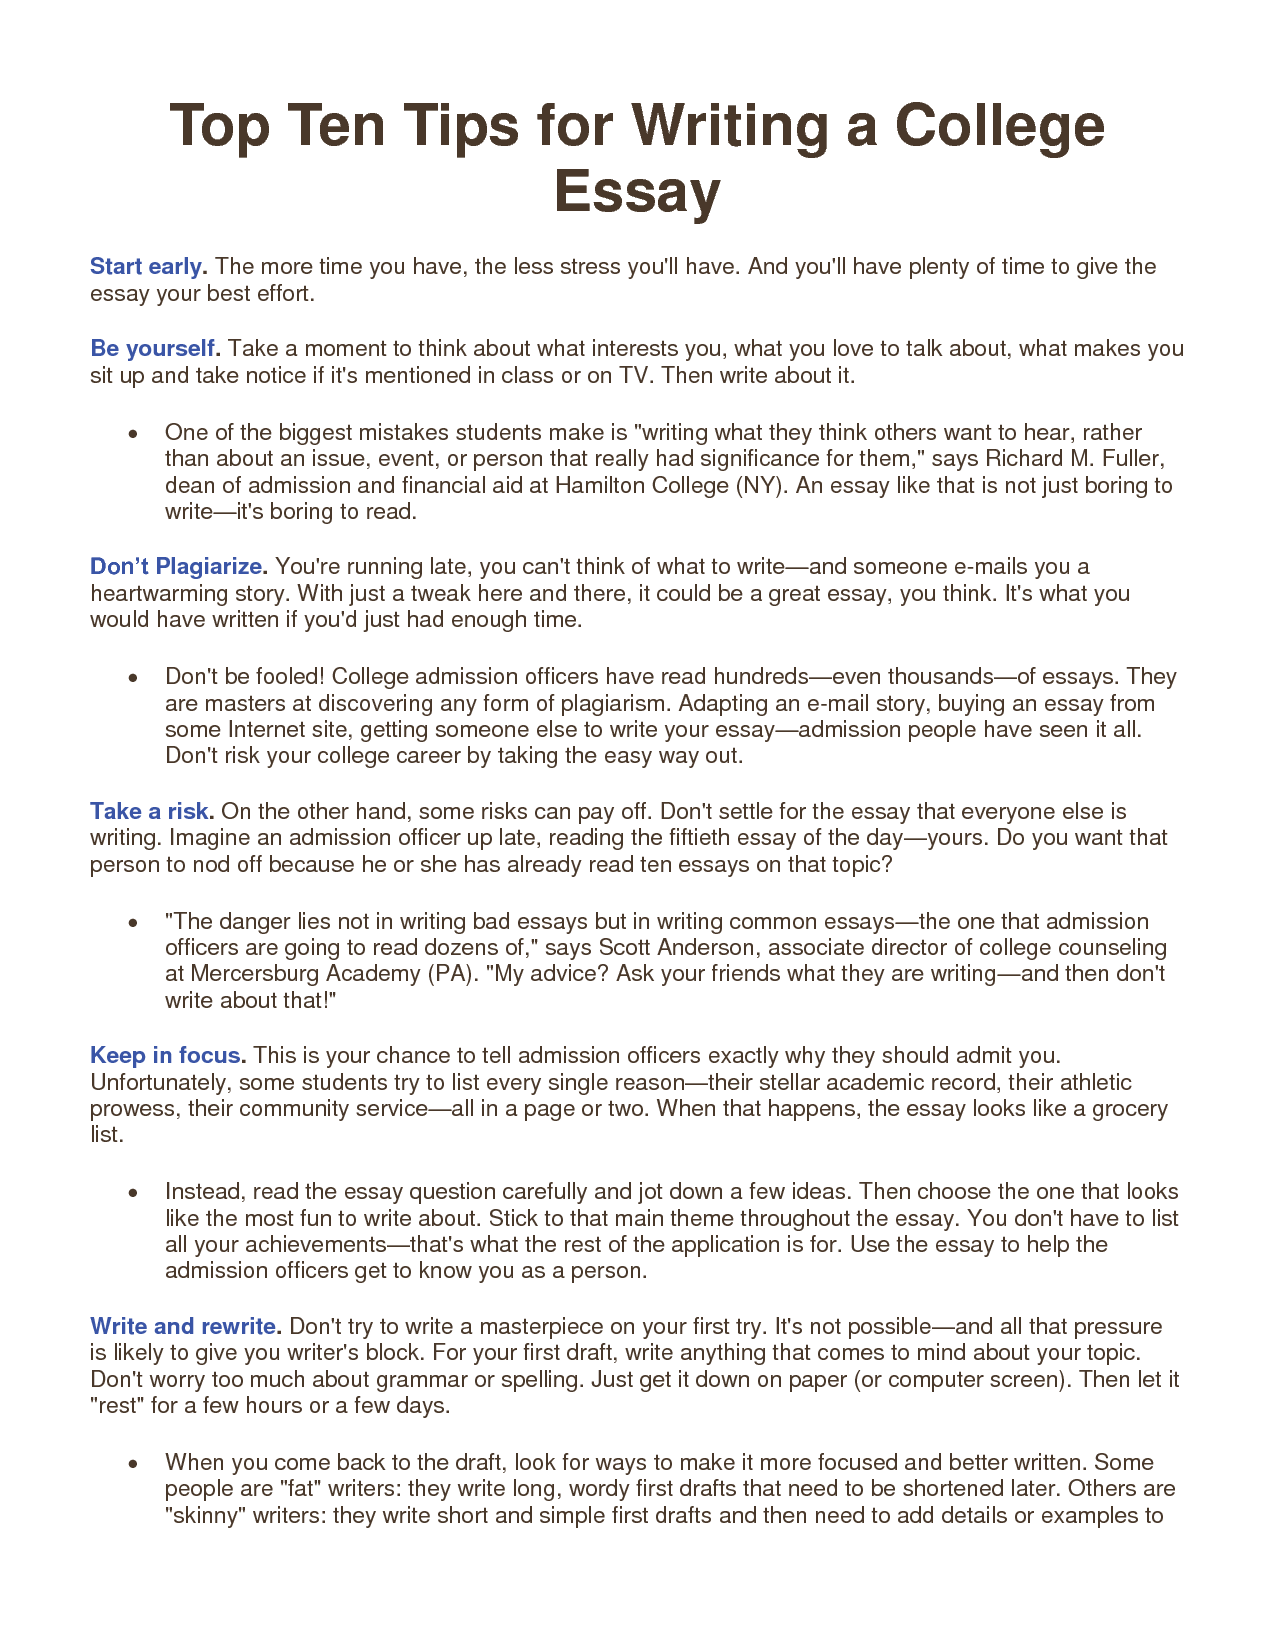 Reflective Essay English Class Persuasive Essay Along Nutrient Refuge English Essay Samples also Learning English Essay Example Persuasive Essay On Food Safety Sample Narrative Essay High School